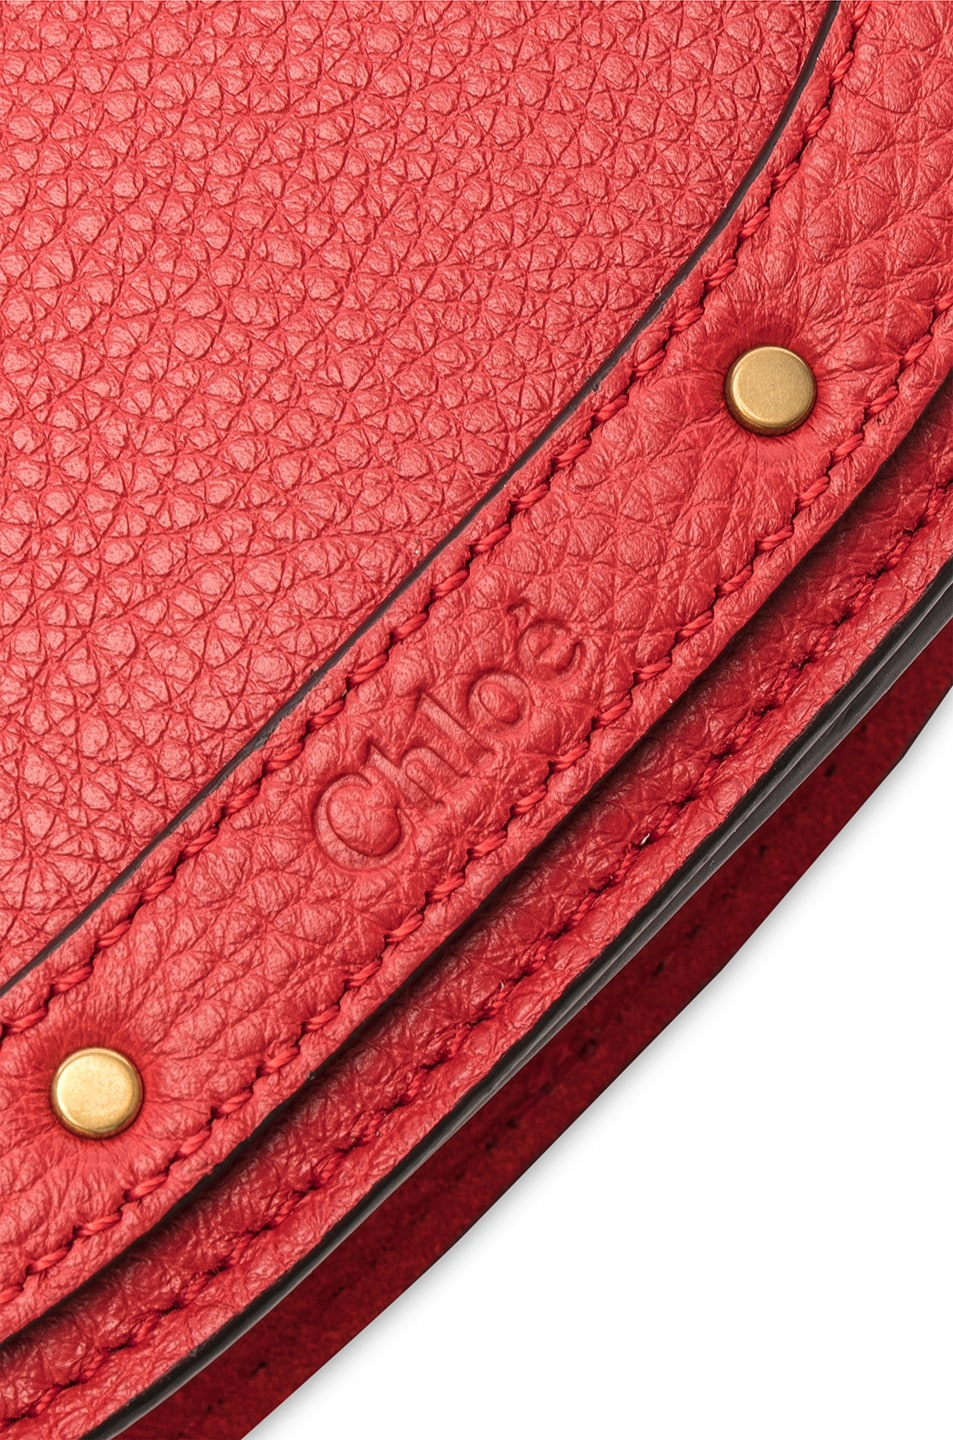 Image 7 of Chloe Small Nile Bracelet Bag Calfskin & Suede in Plaid Red